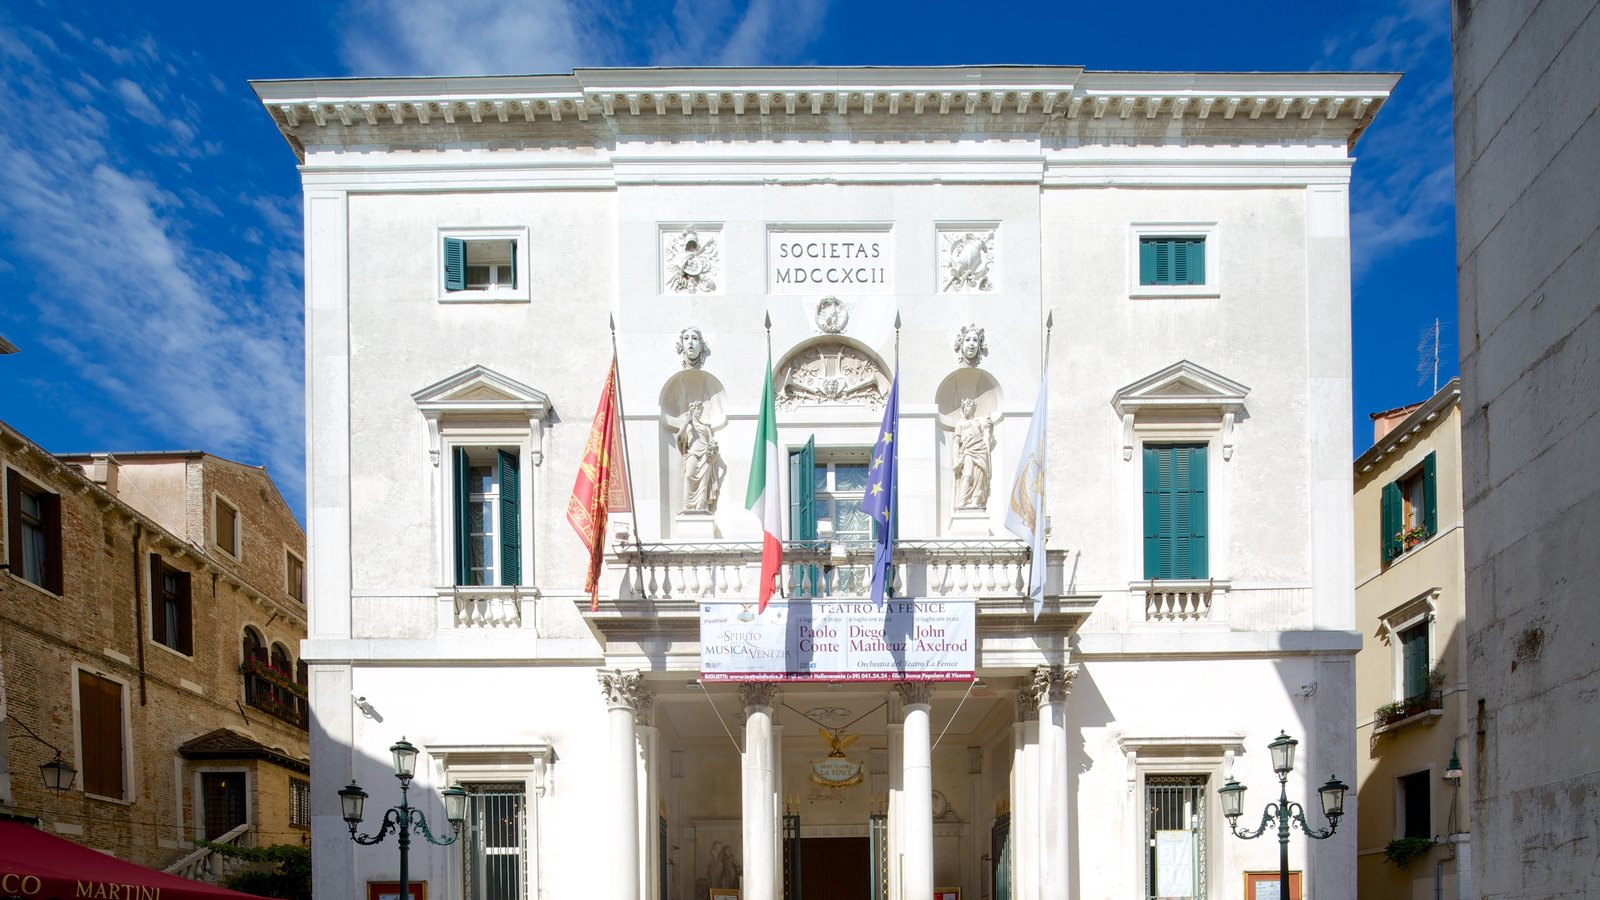 La Fenice Opera House showing heritage architecture and a city